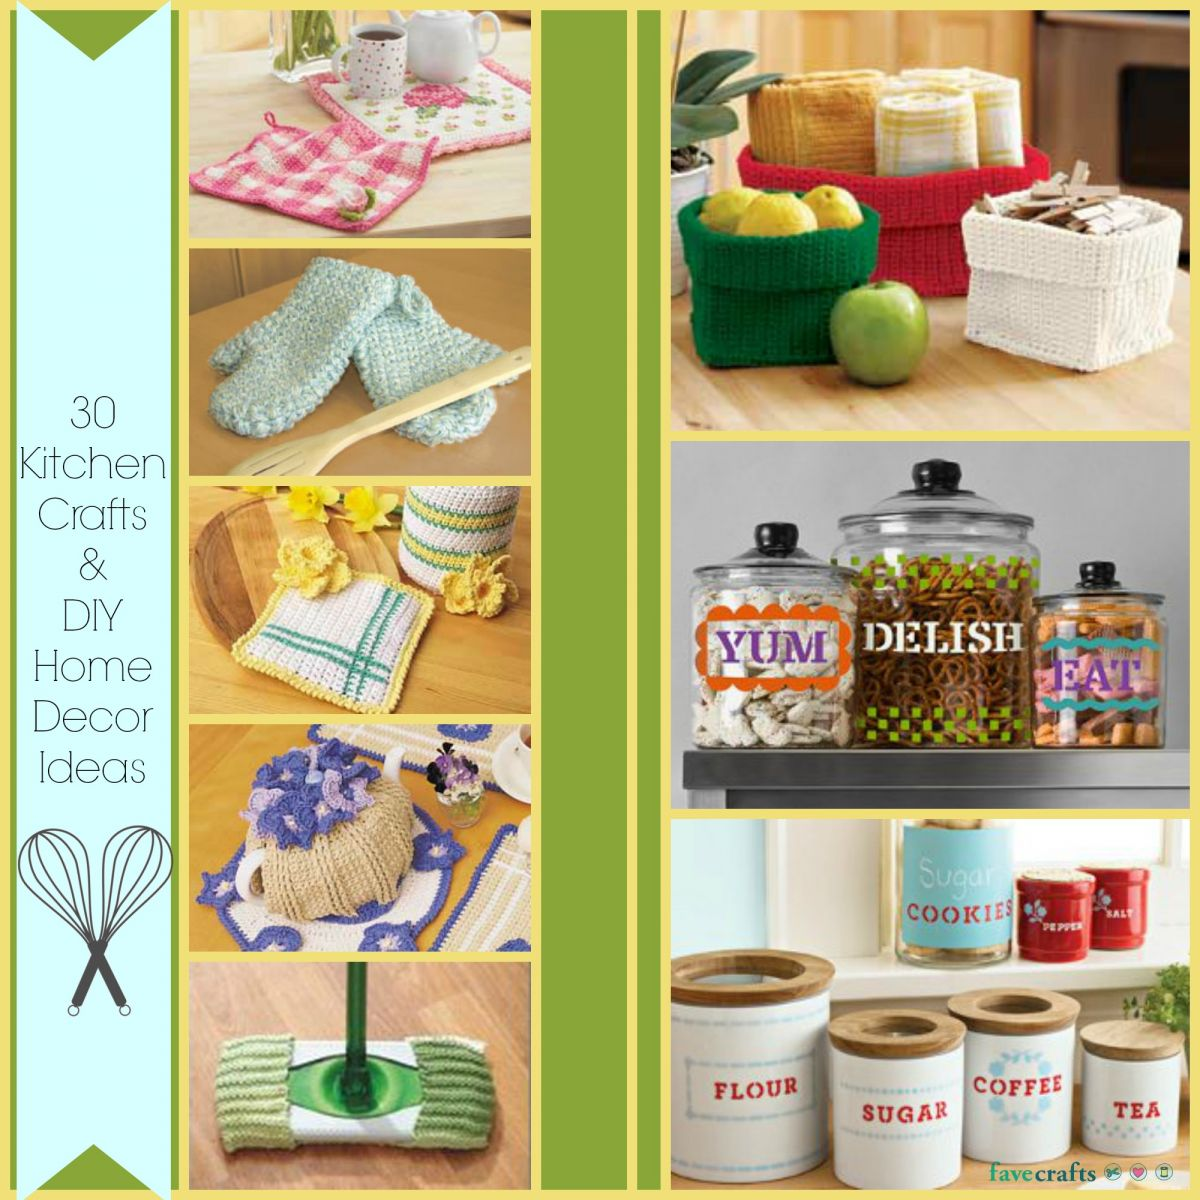 30 kitchen crafts and diy home decor ideas for Decoration items made at home